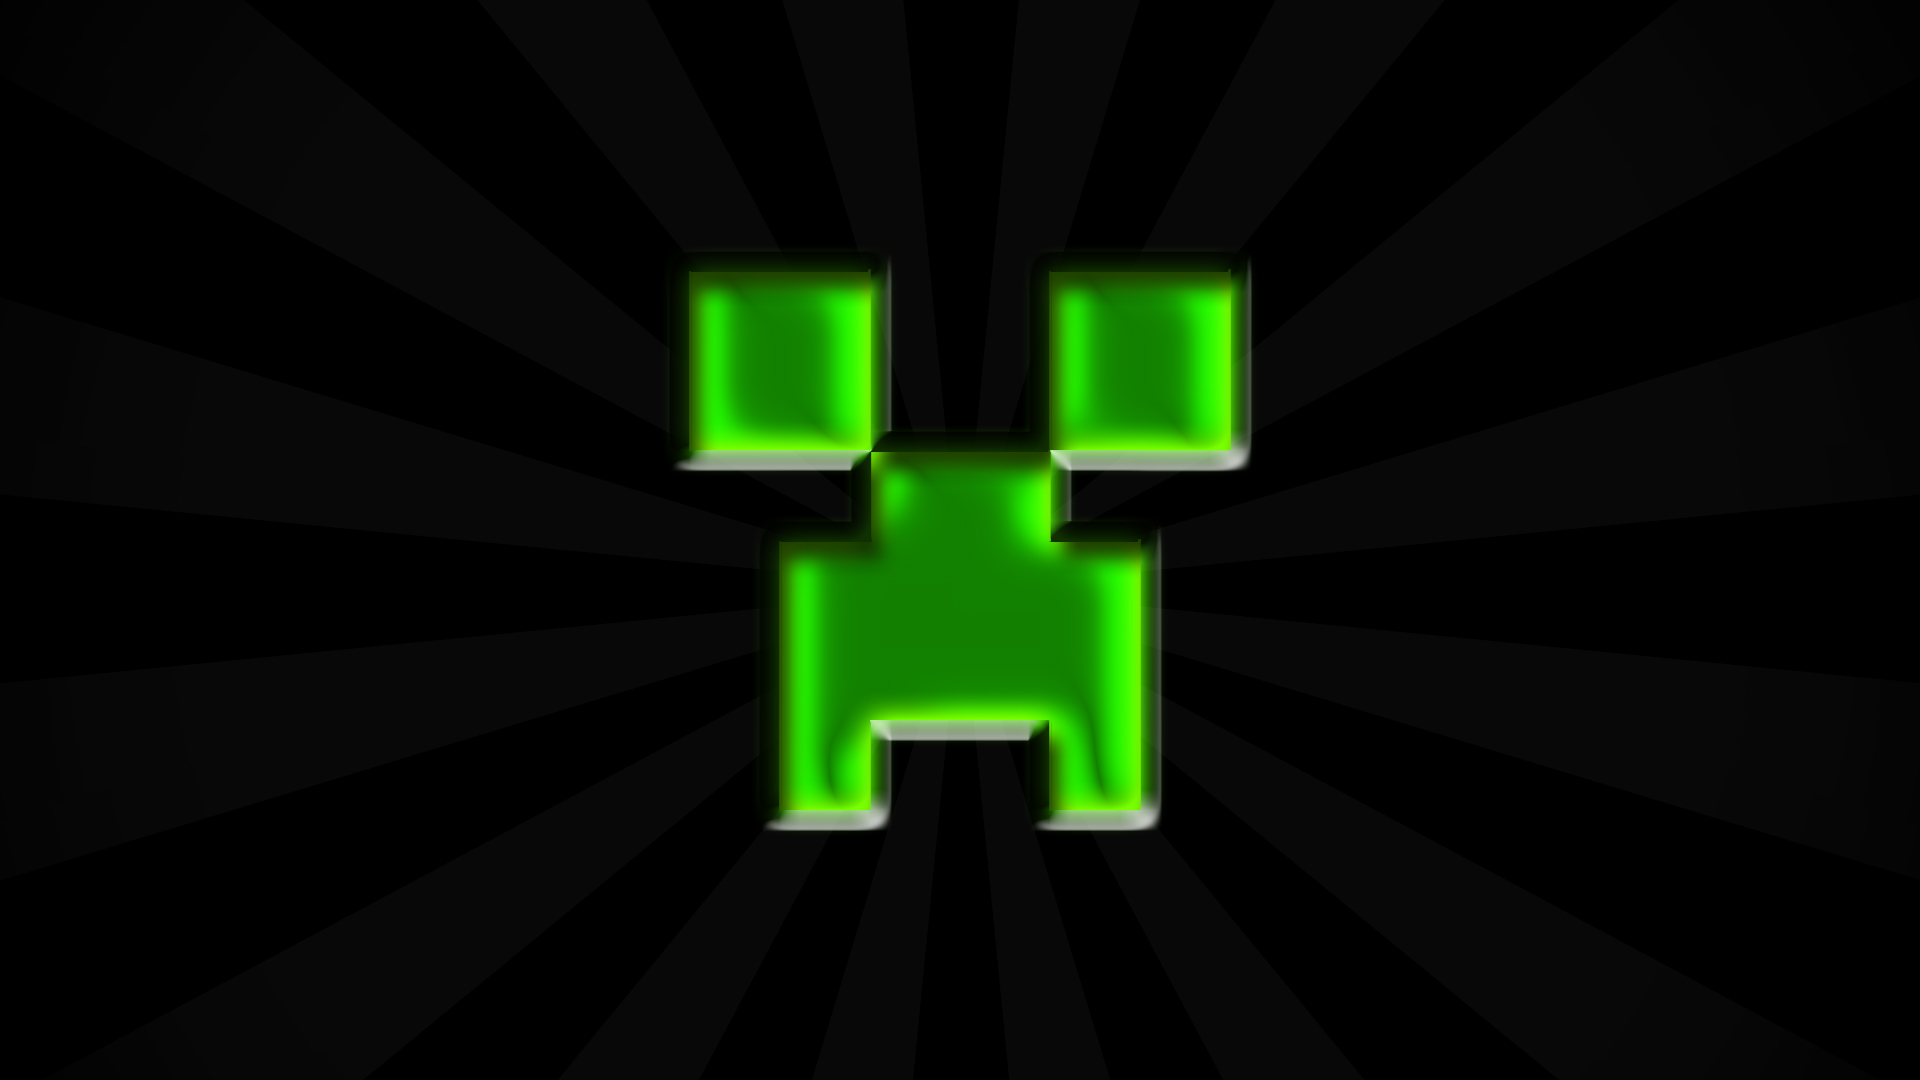 Minecraft Creeper Wallpaper 1920x1080 Images Pictures   Becuo 1920x1080